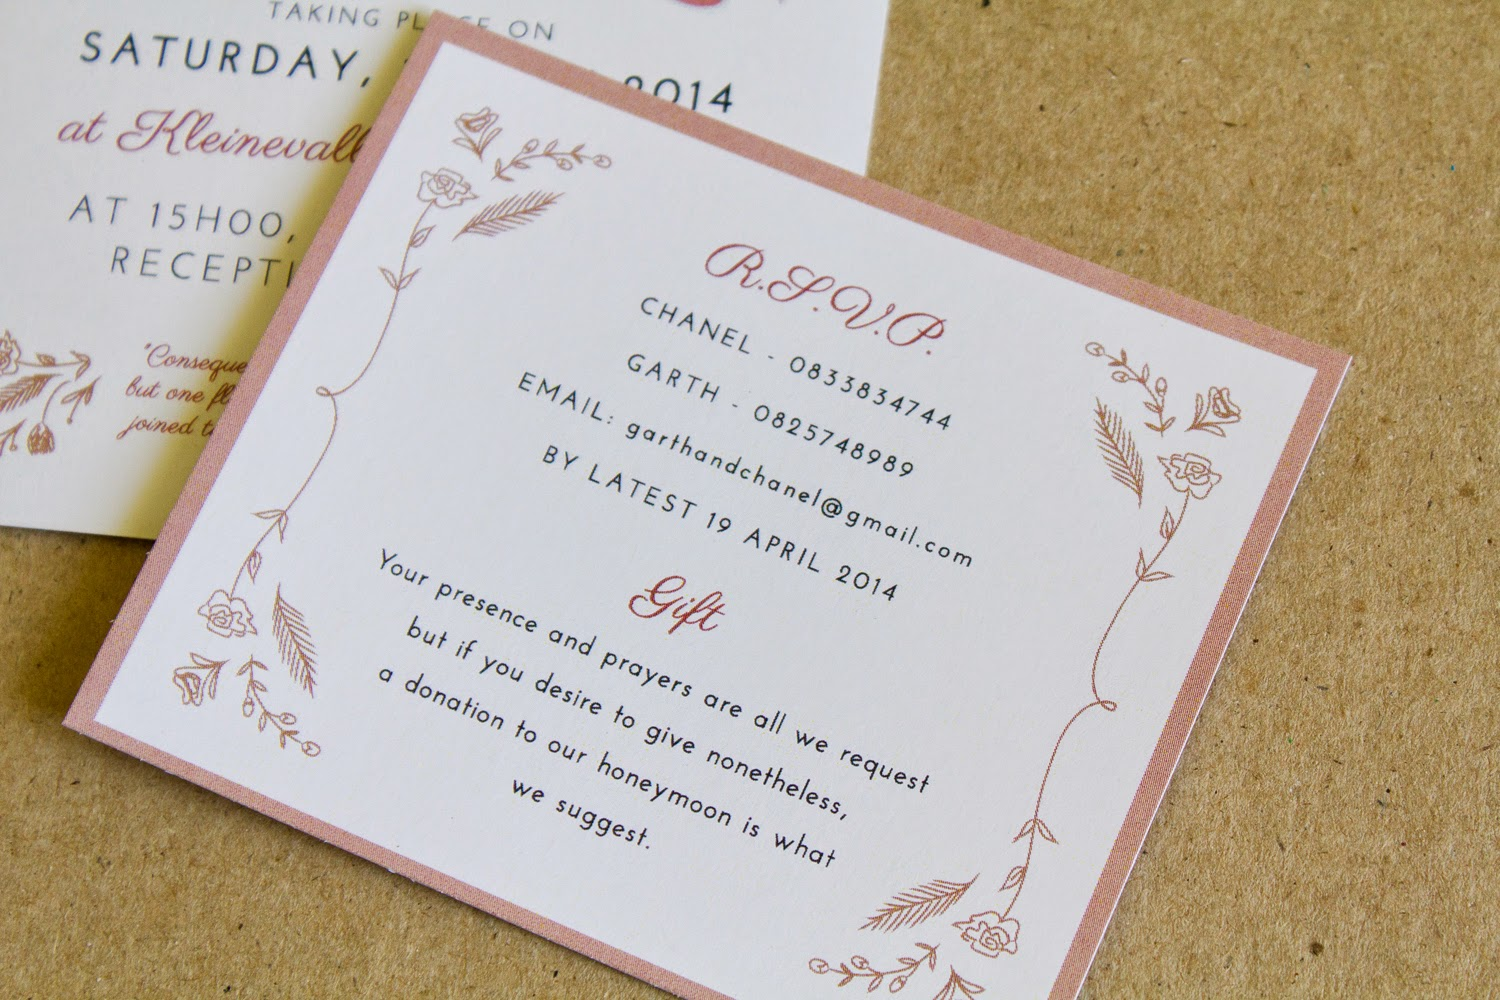 Bells And Whistles Chanel And Garth S Wedding Invitation